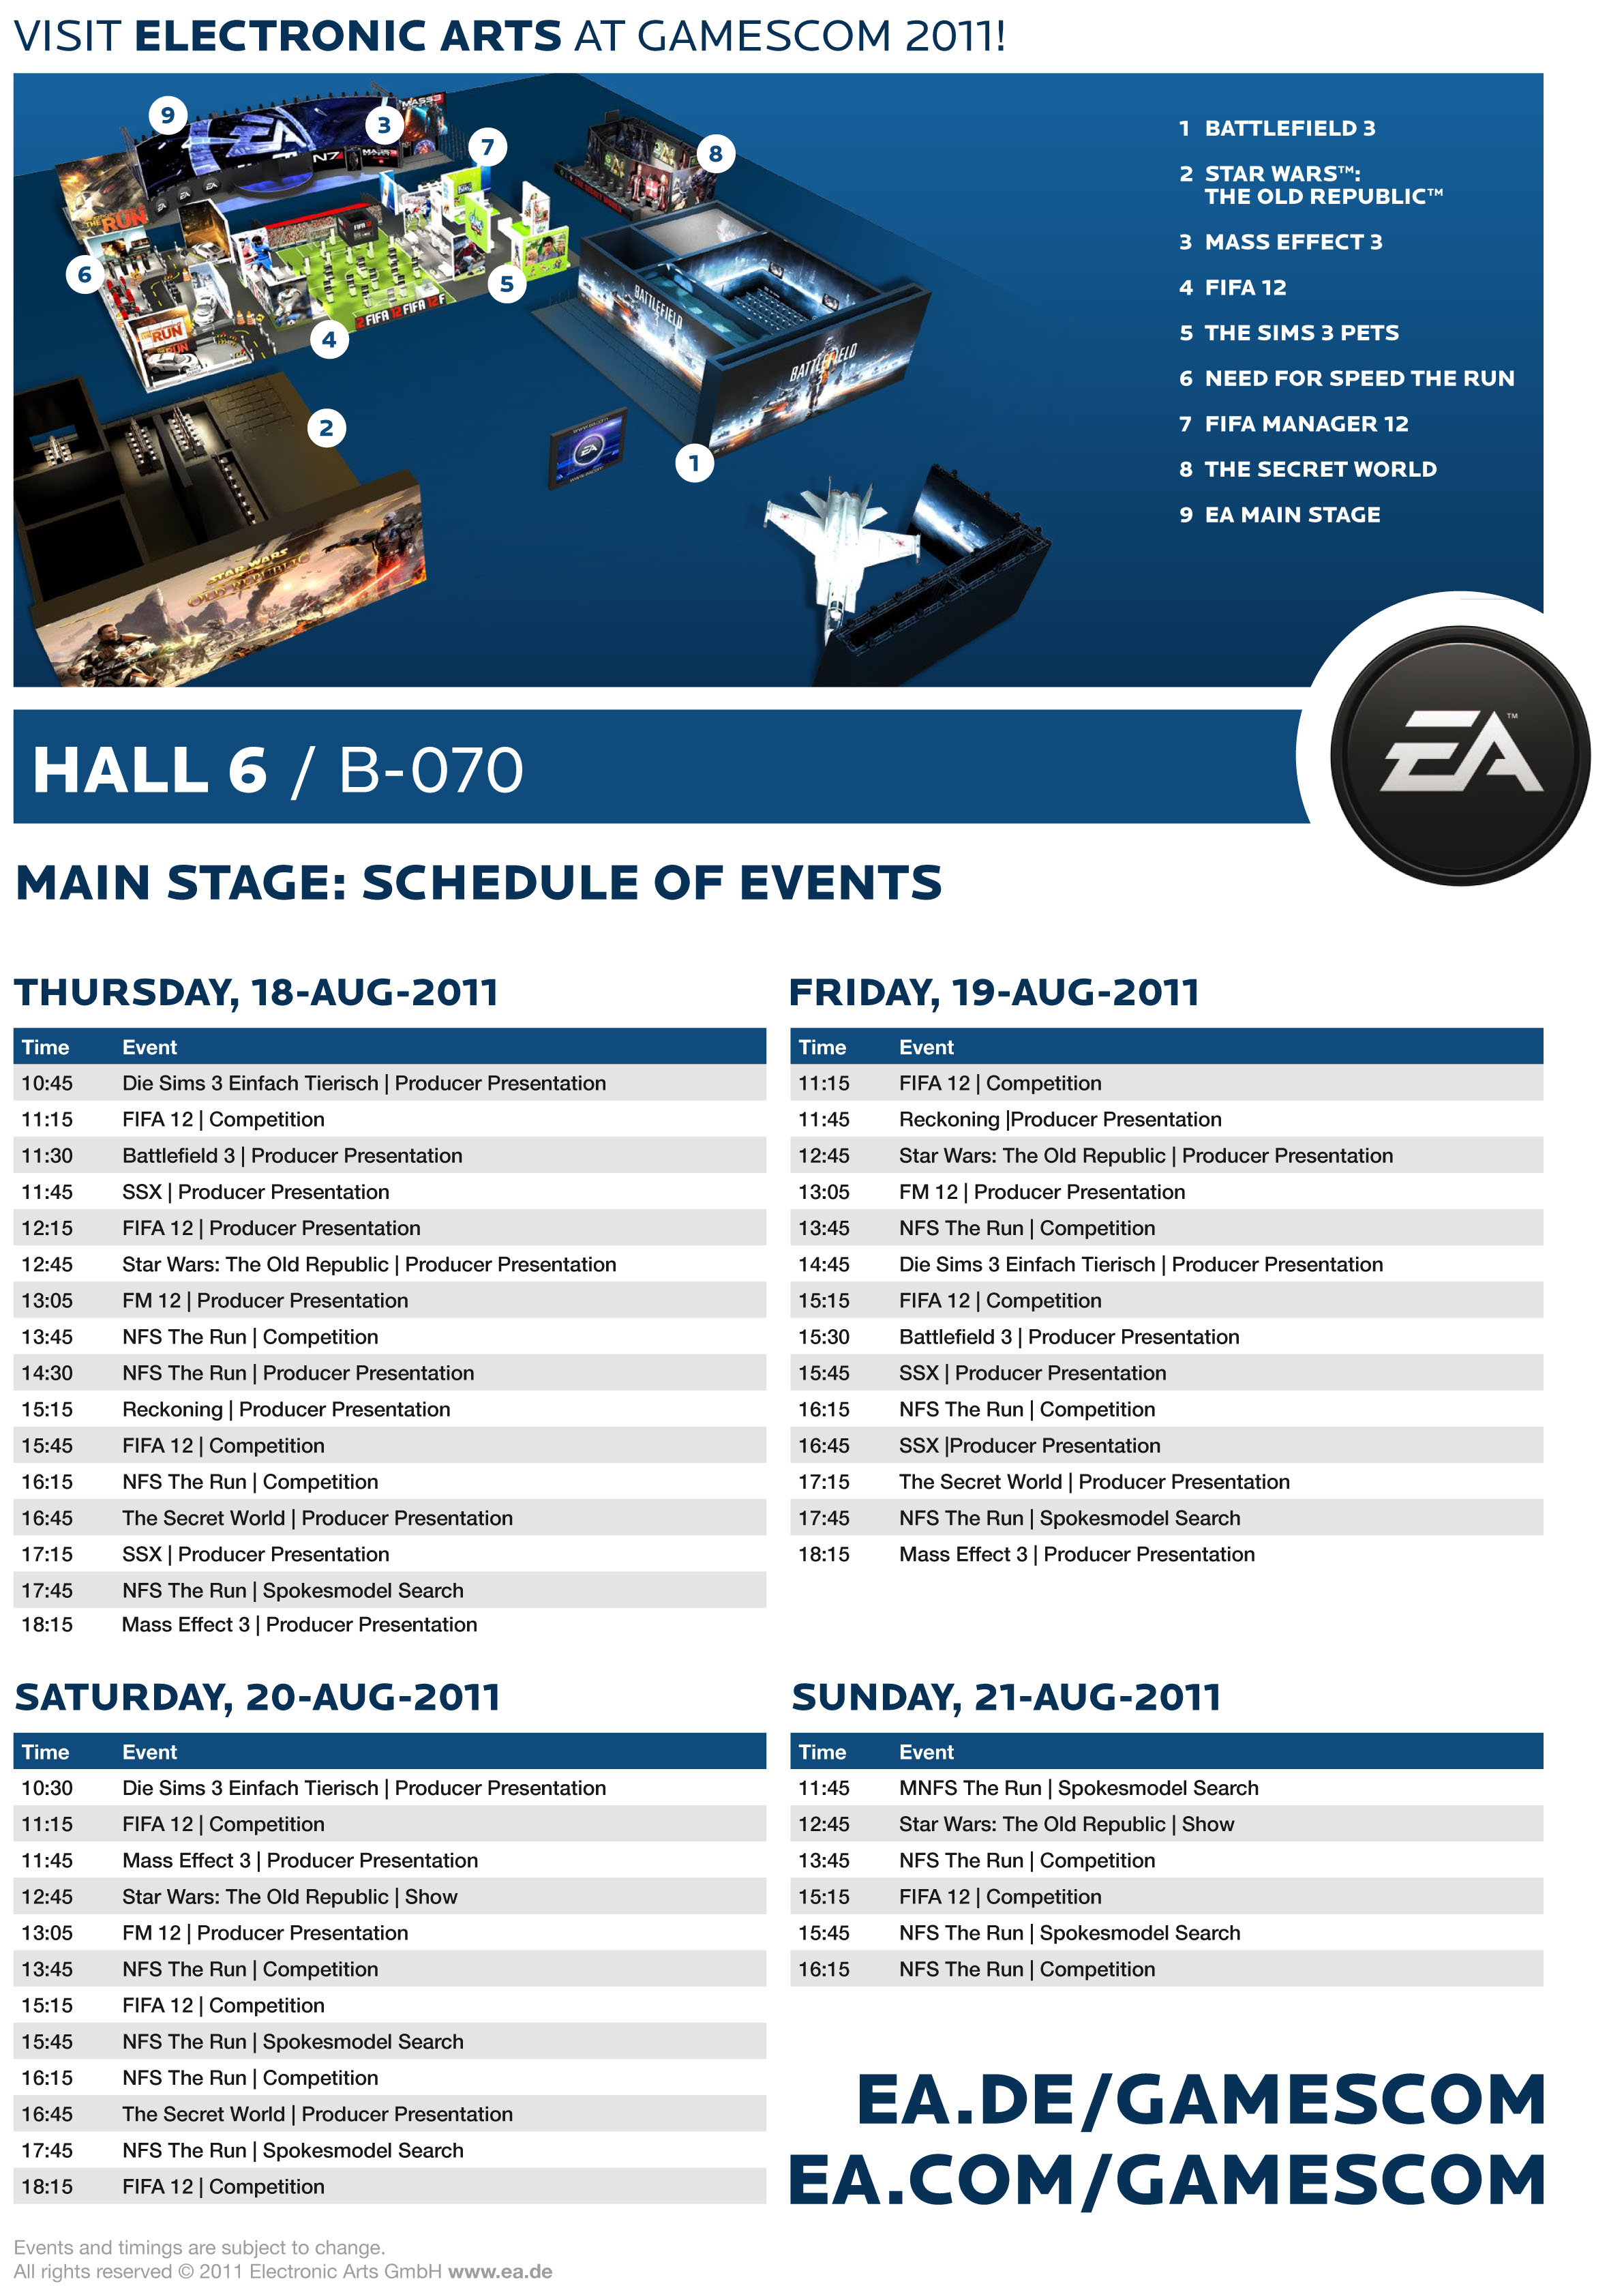 EA at Gamescom 2011